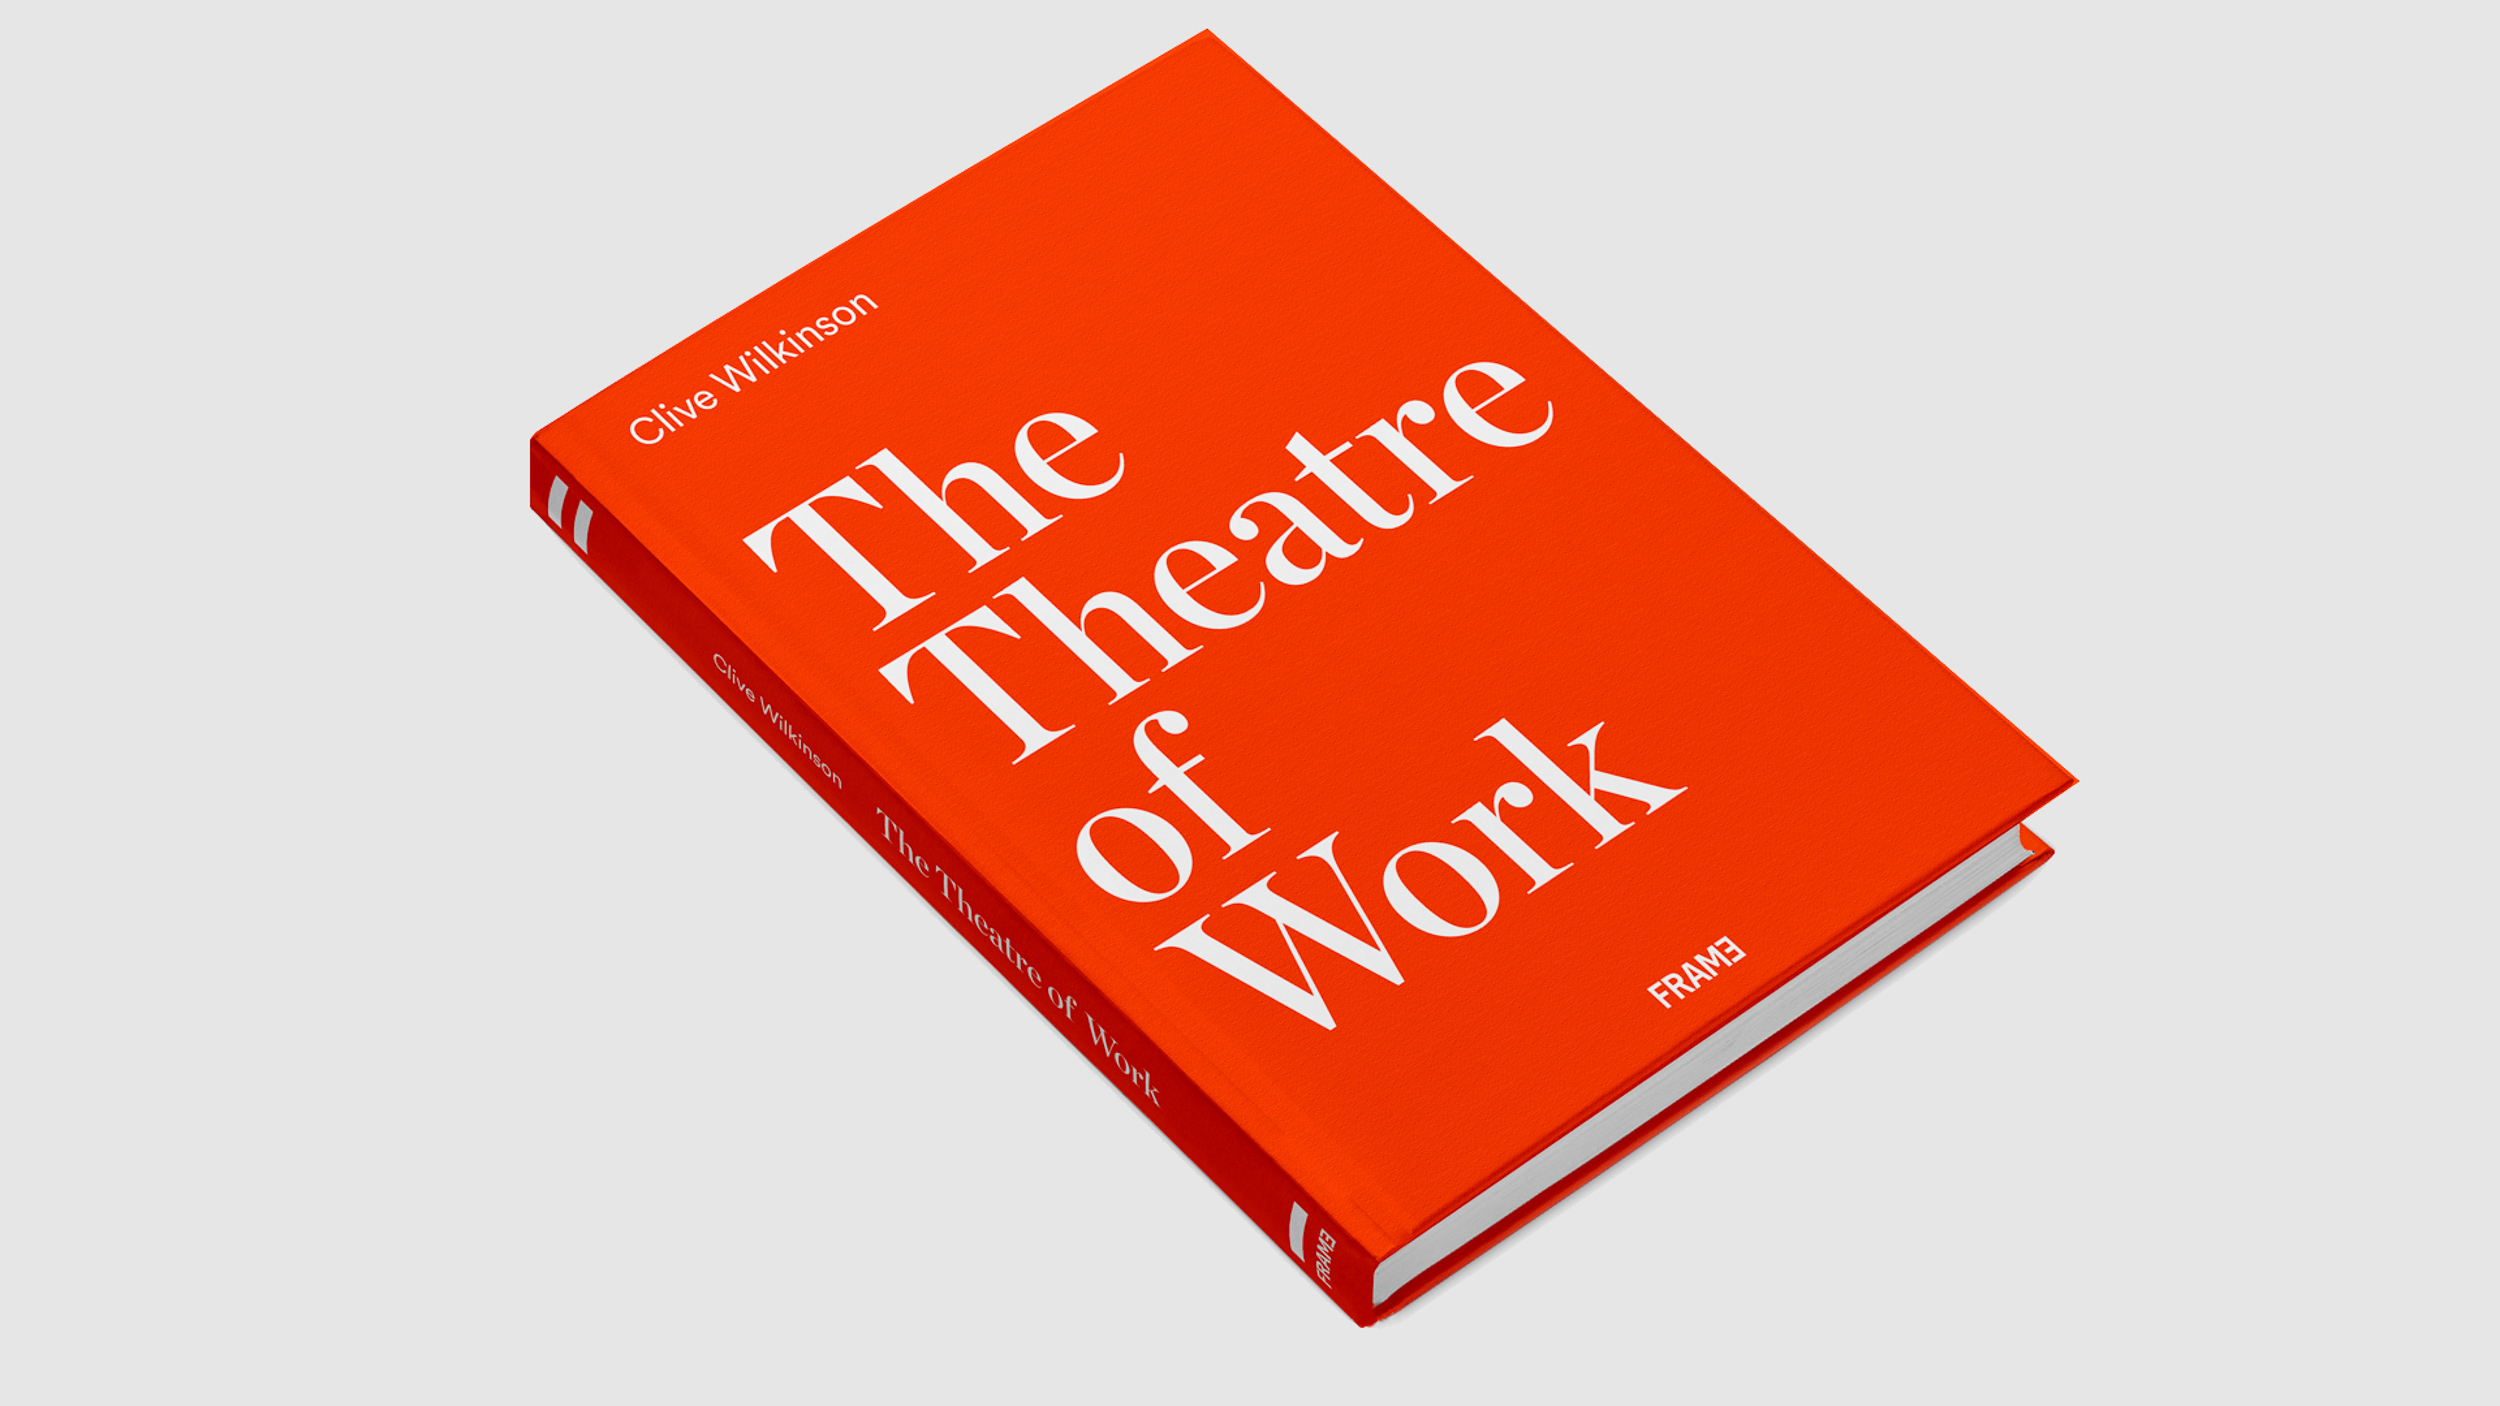 02 The Theatre of Work